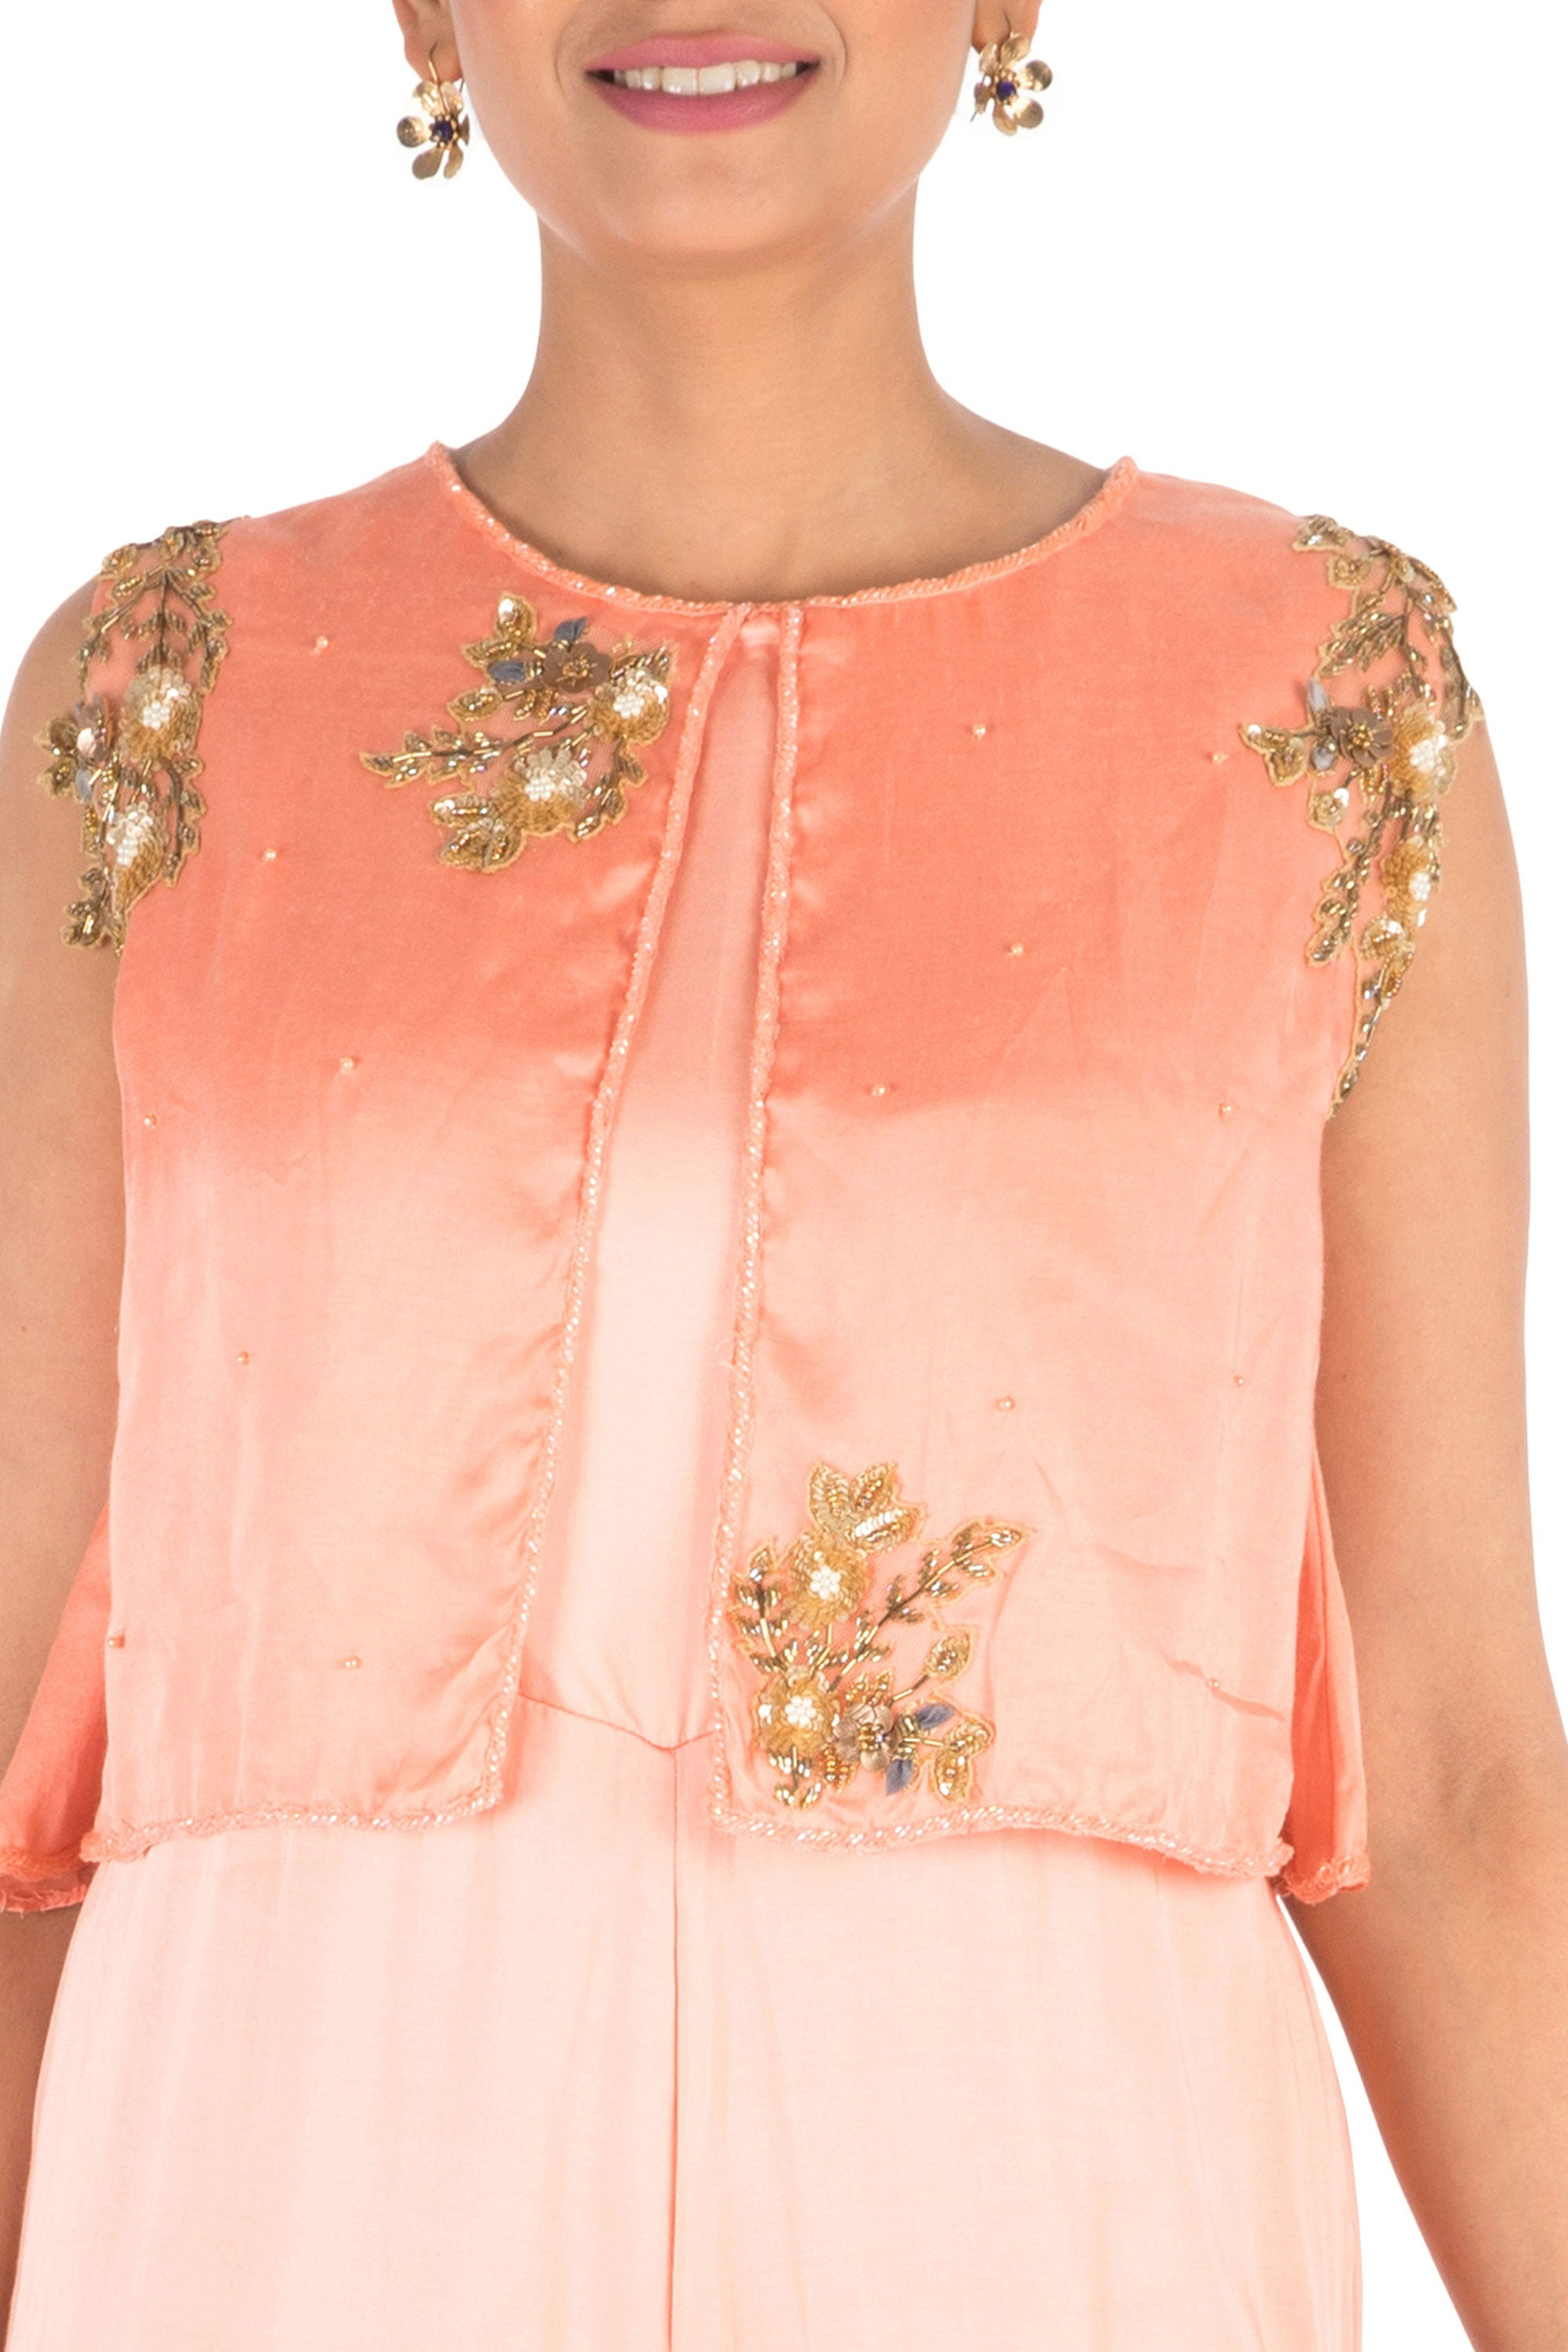 Hand Embroidered Peach Jumpsuit With Attach Jacket Closeup